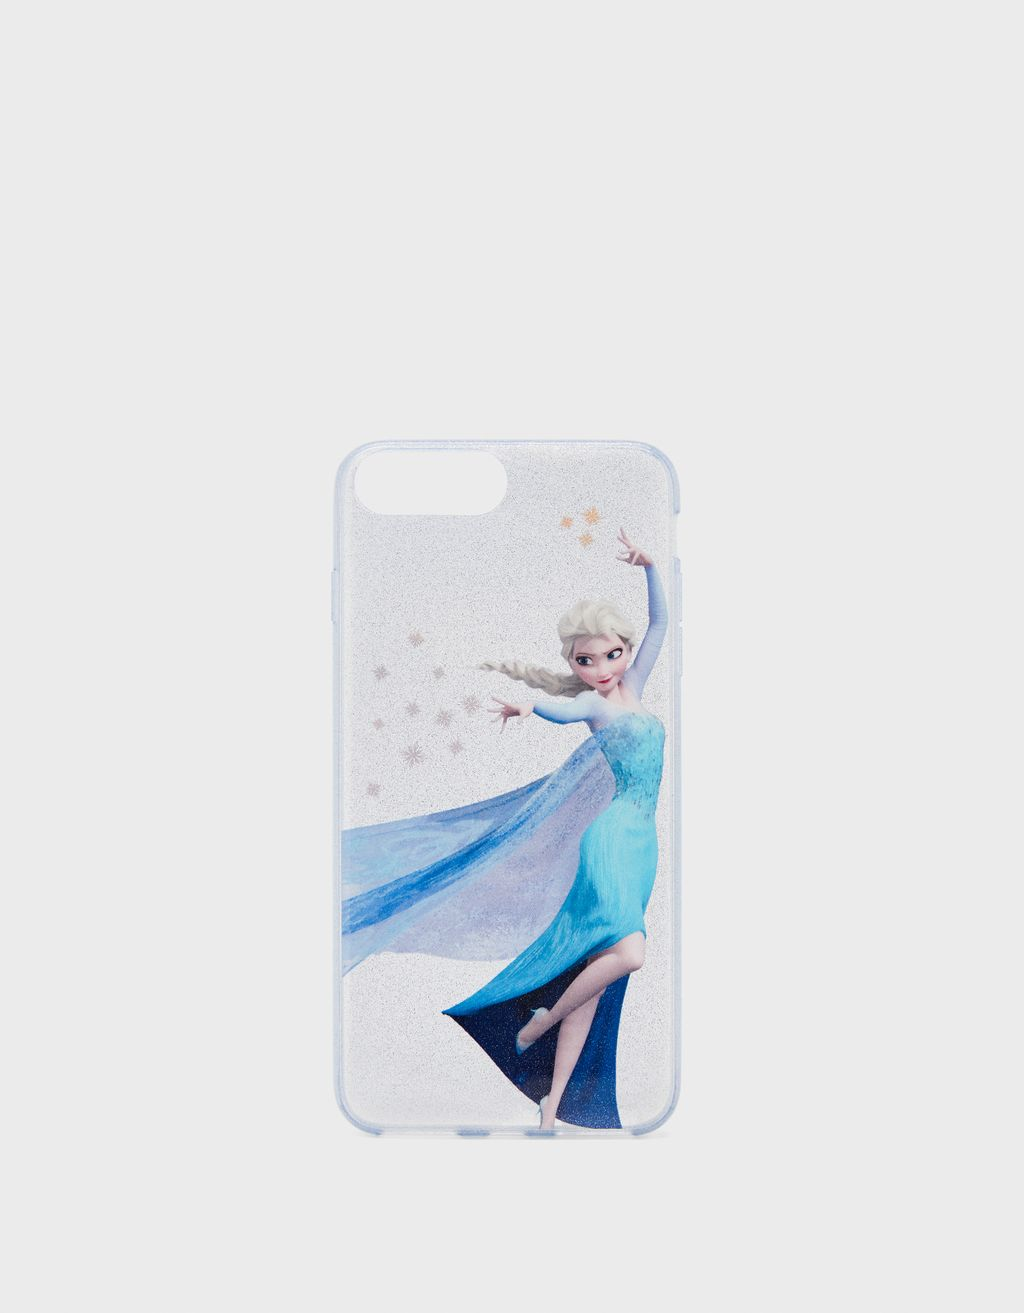 iPhone 6 Plus / 7 Plus / 8 Plus vāciņš 'Frozen'